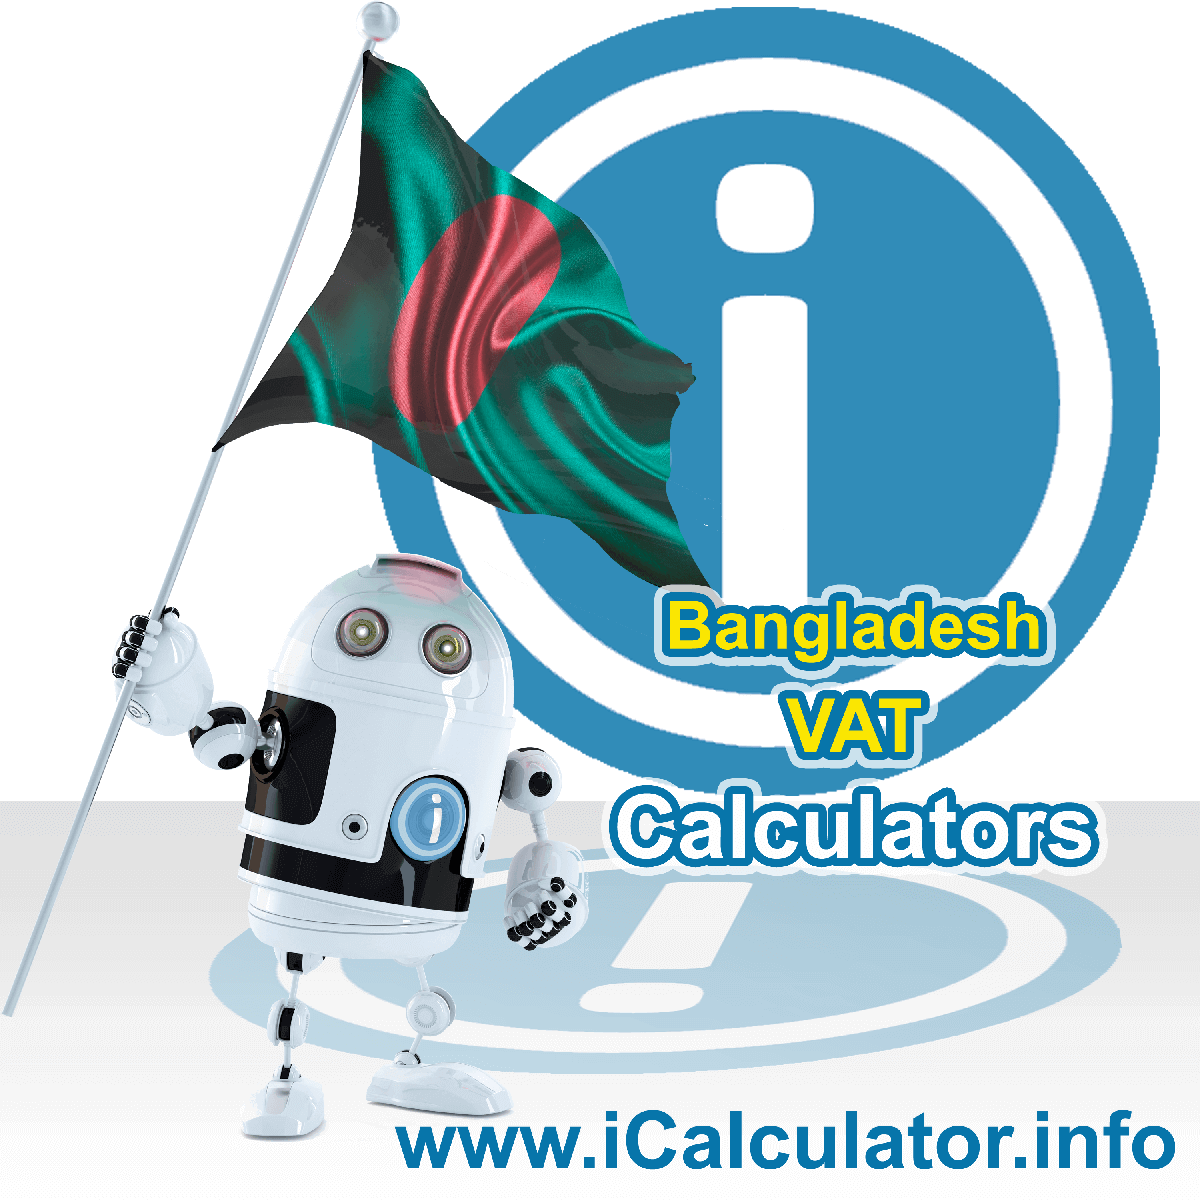 Bangladesh VAT Calculator. This image shows the Bangladesh flag and information relating to the VAT formula used for calculating Value Added Tax in Bangladesh using the Bangladesh VAT Calculator in 2020